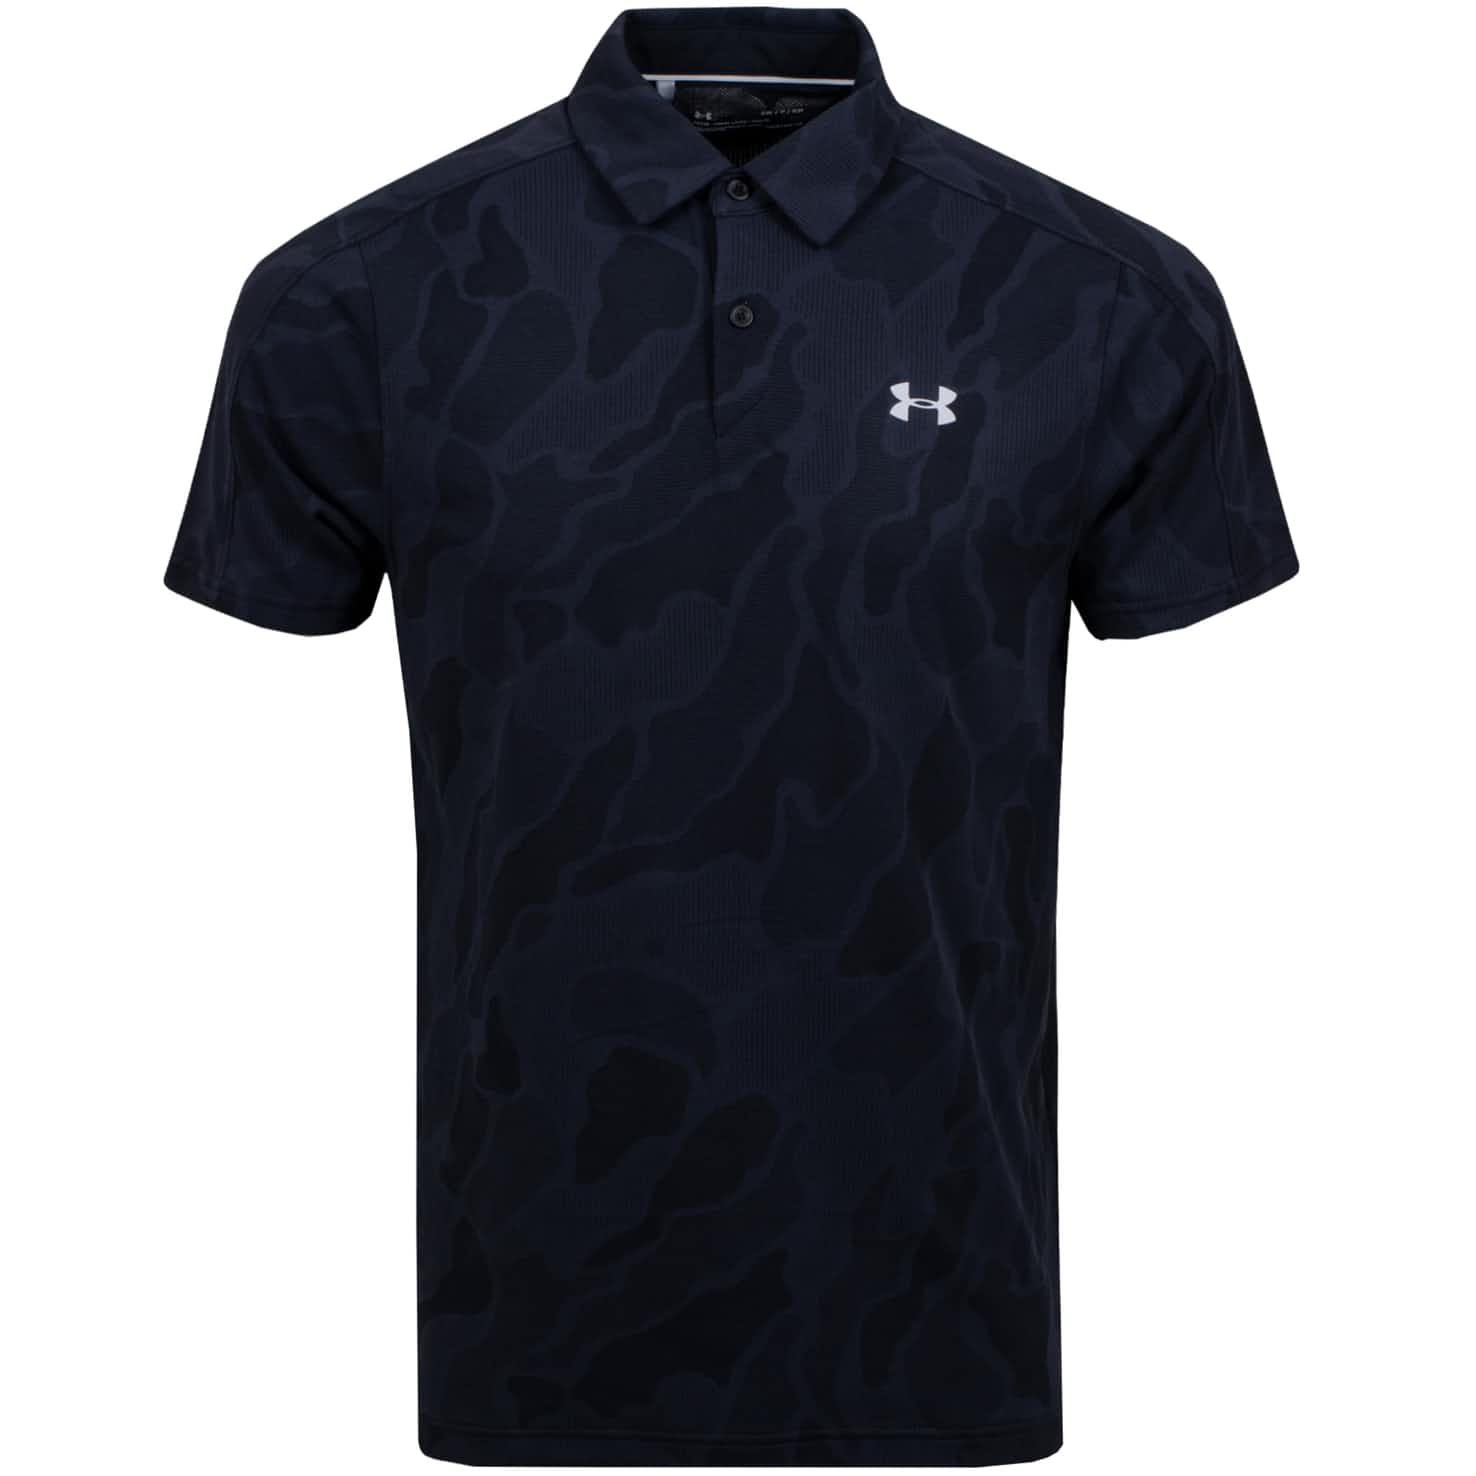 Vanish Jacquard Polo Black - SS20